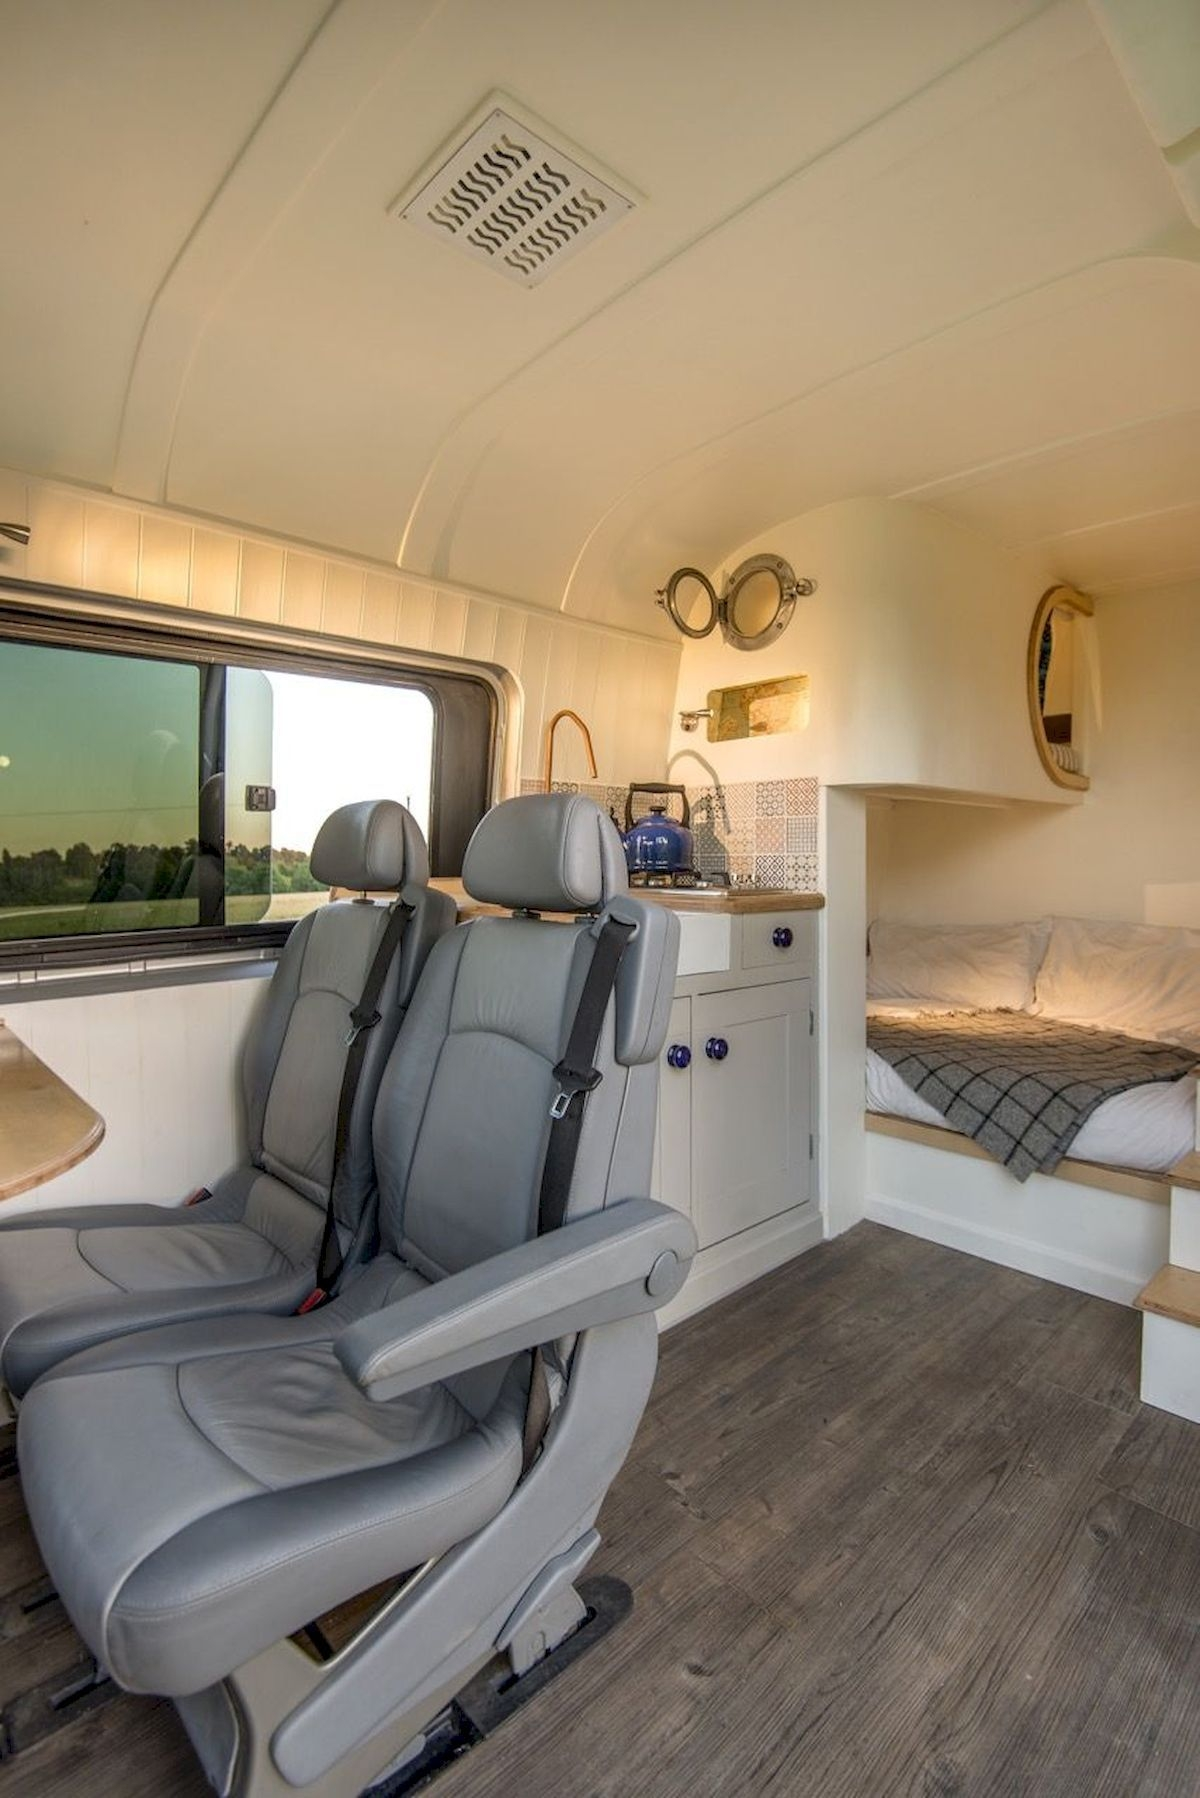 Incredible Rv Motorhome Interior Design Ideas For Summer Holiday 27